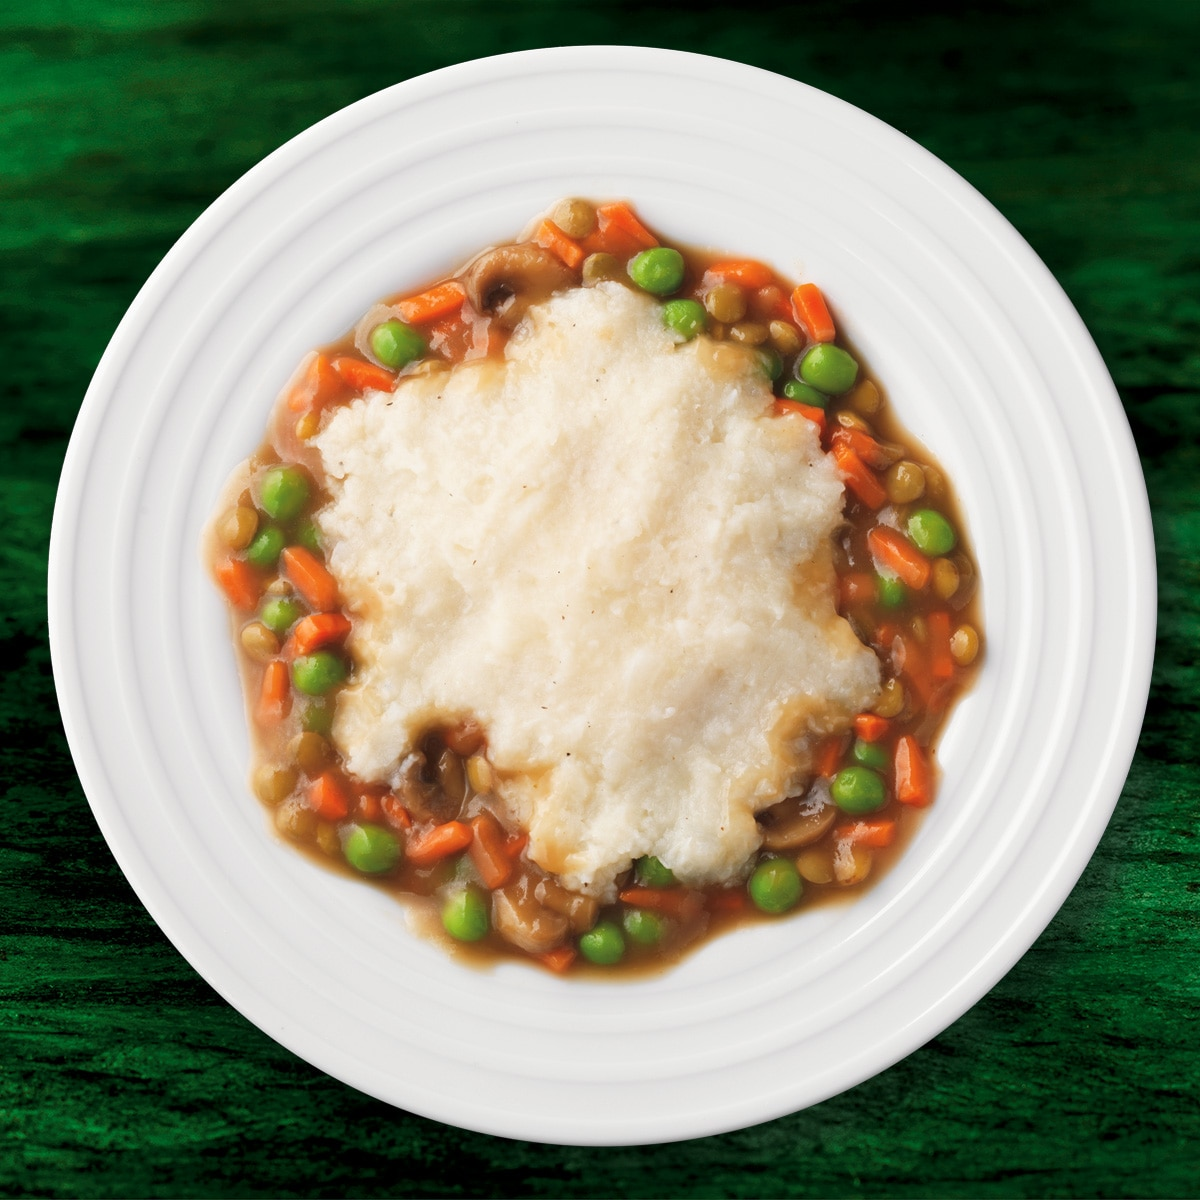 Mushroom & Vegetable Shepherd's Pie